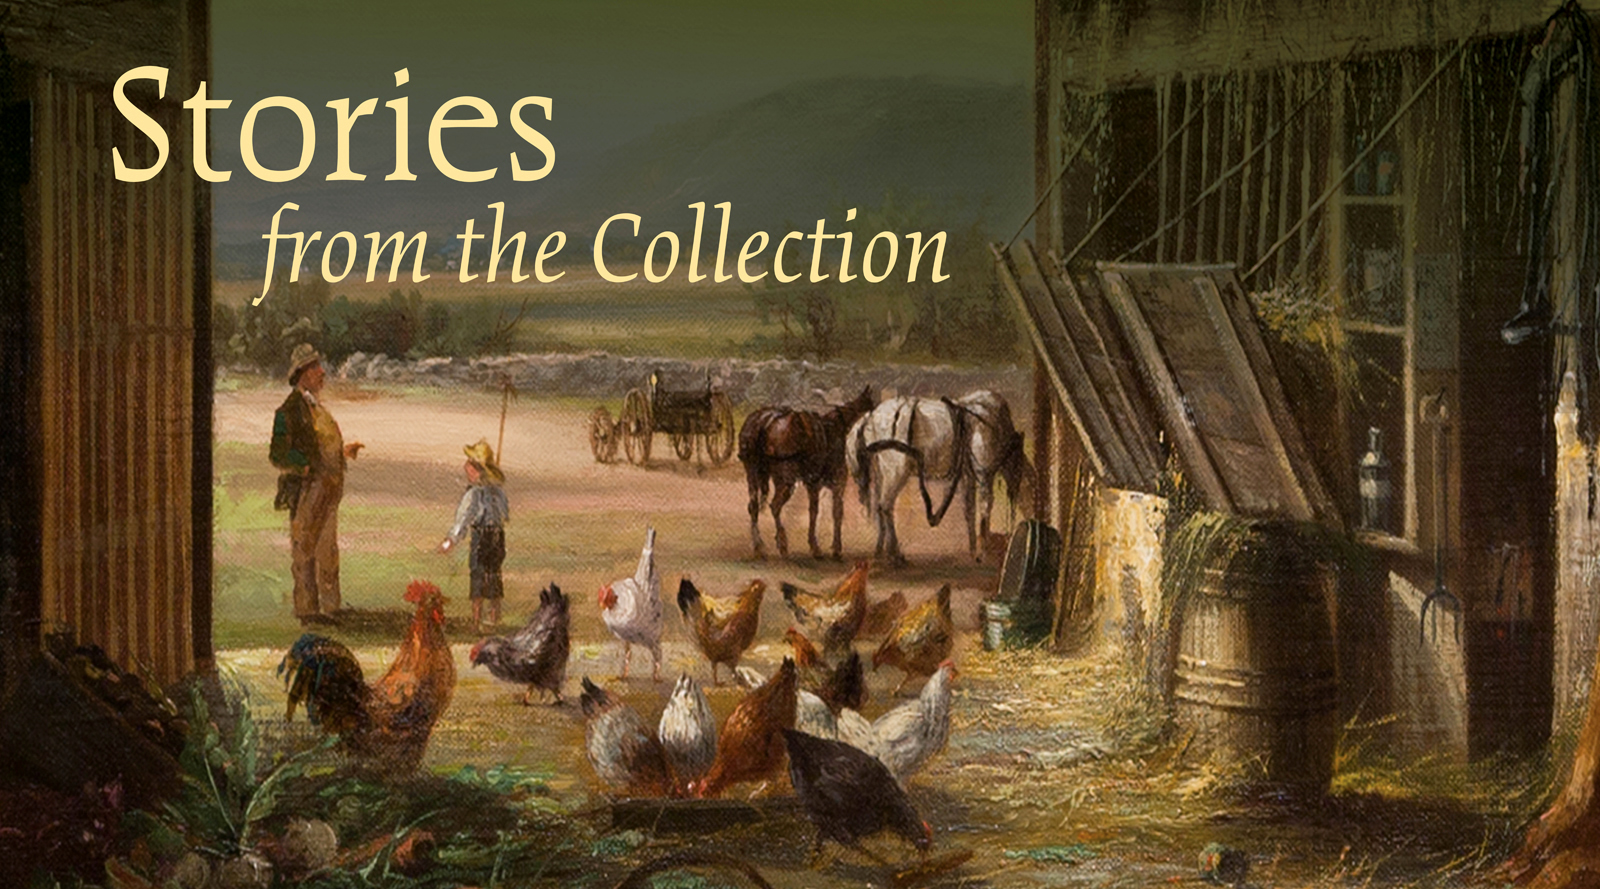 Stories from the Collection Fruitlands Museum of all the collections at the Fruitlands Museum, their land is the largest interpreting asset as their living collection